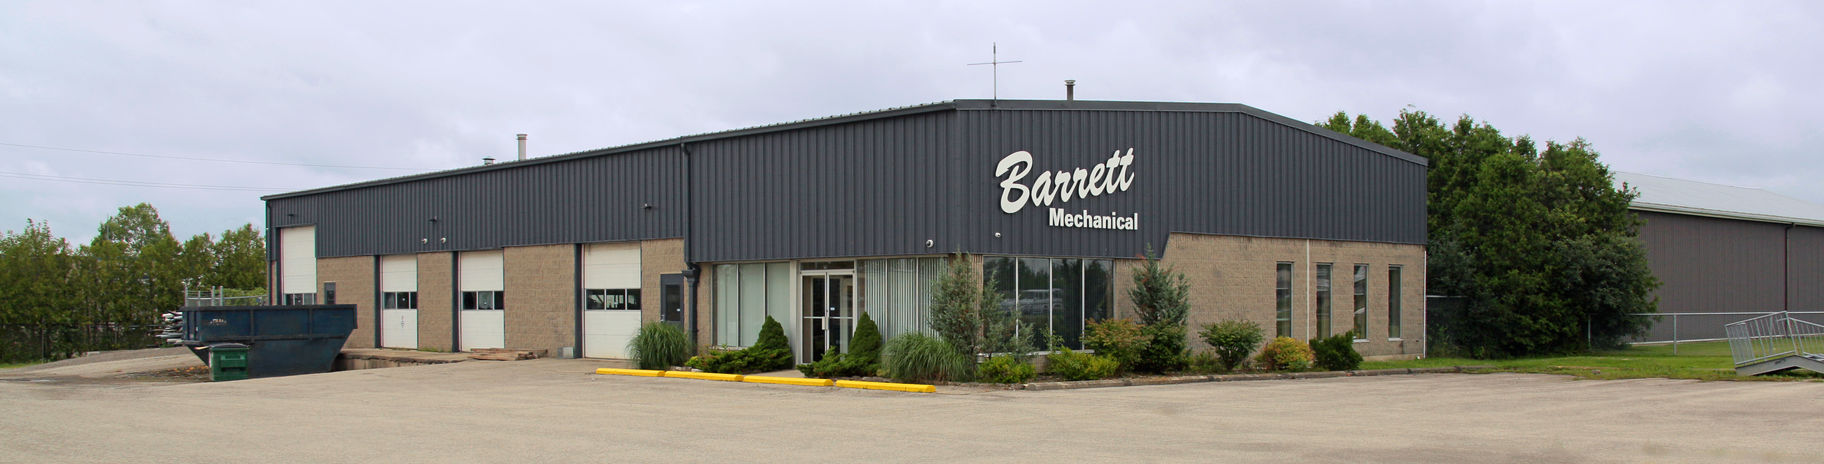 Barrett Mechanical - Mechanical Plumbing Specialists in London Ontario.